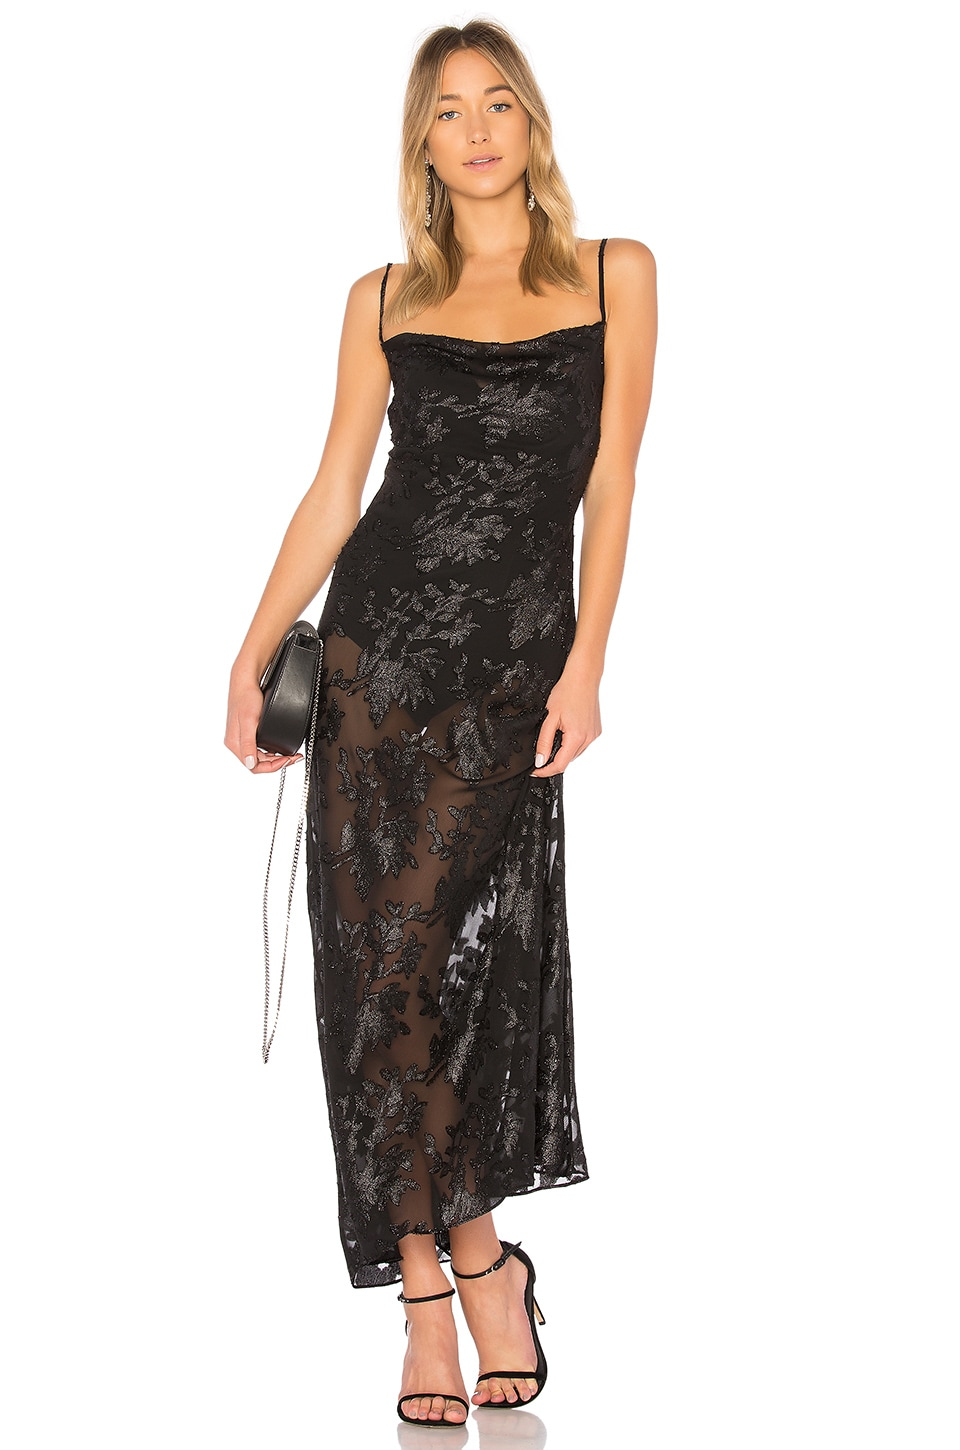 LPA Dress 603 in Black Lurex